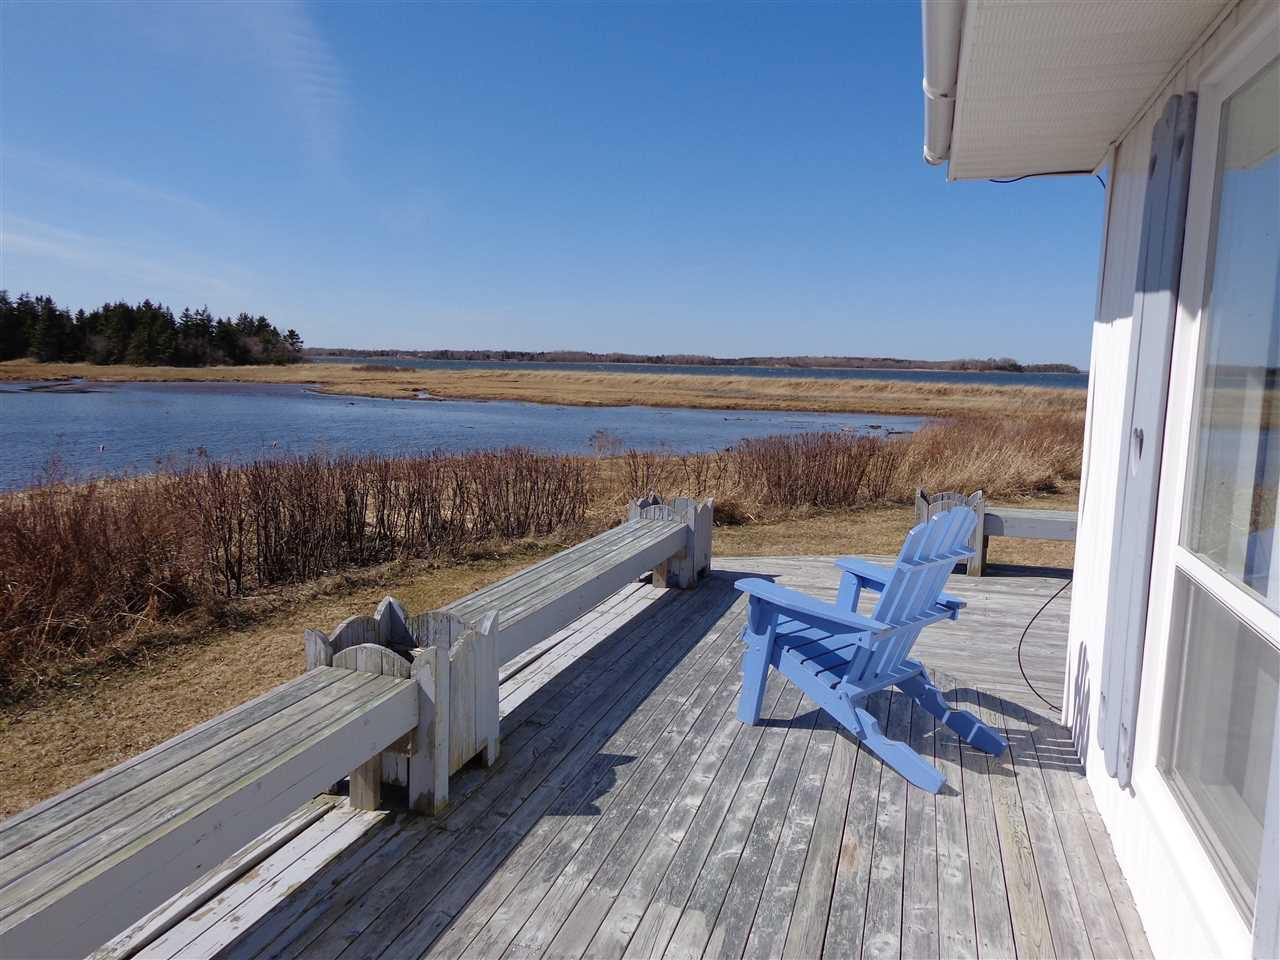 Main Photo: 61 Blaine MacKeil Road in Caribou: 108-Rural Pictou County Residential for sale (Northern Region)  : MLS®# 202011798